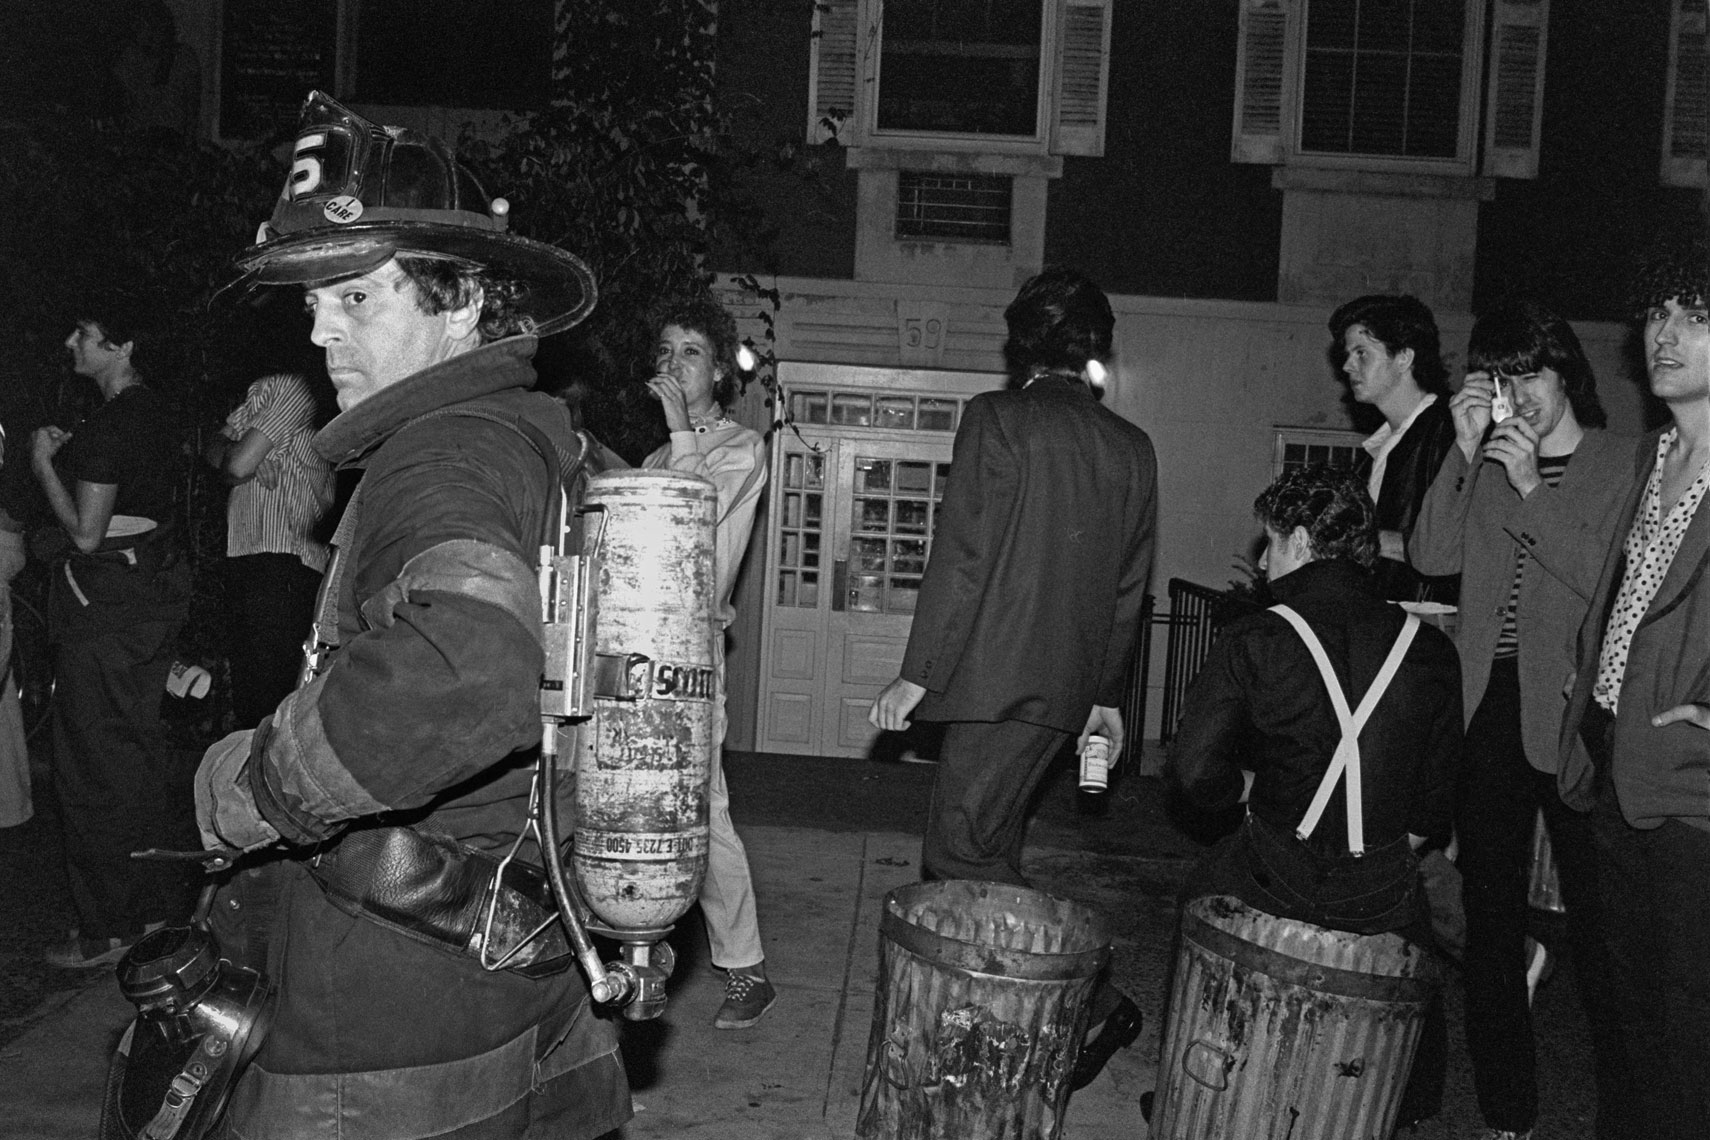 24_Club57_Elvis-Memorial-Party-Fire-Dept-arrives-after-fire-in-Club_0880.jpg